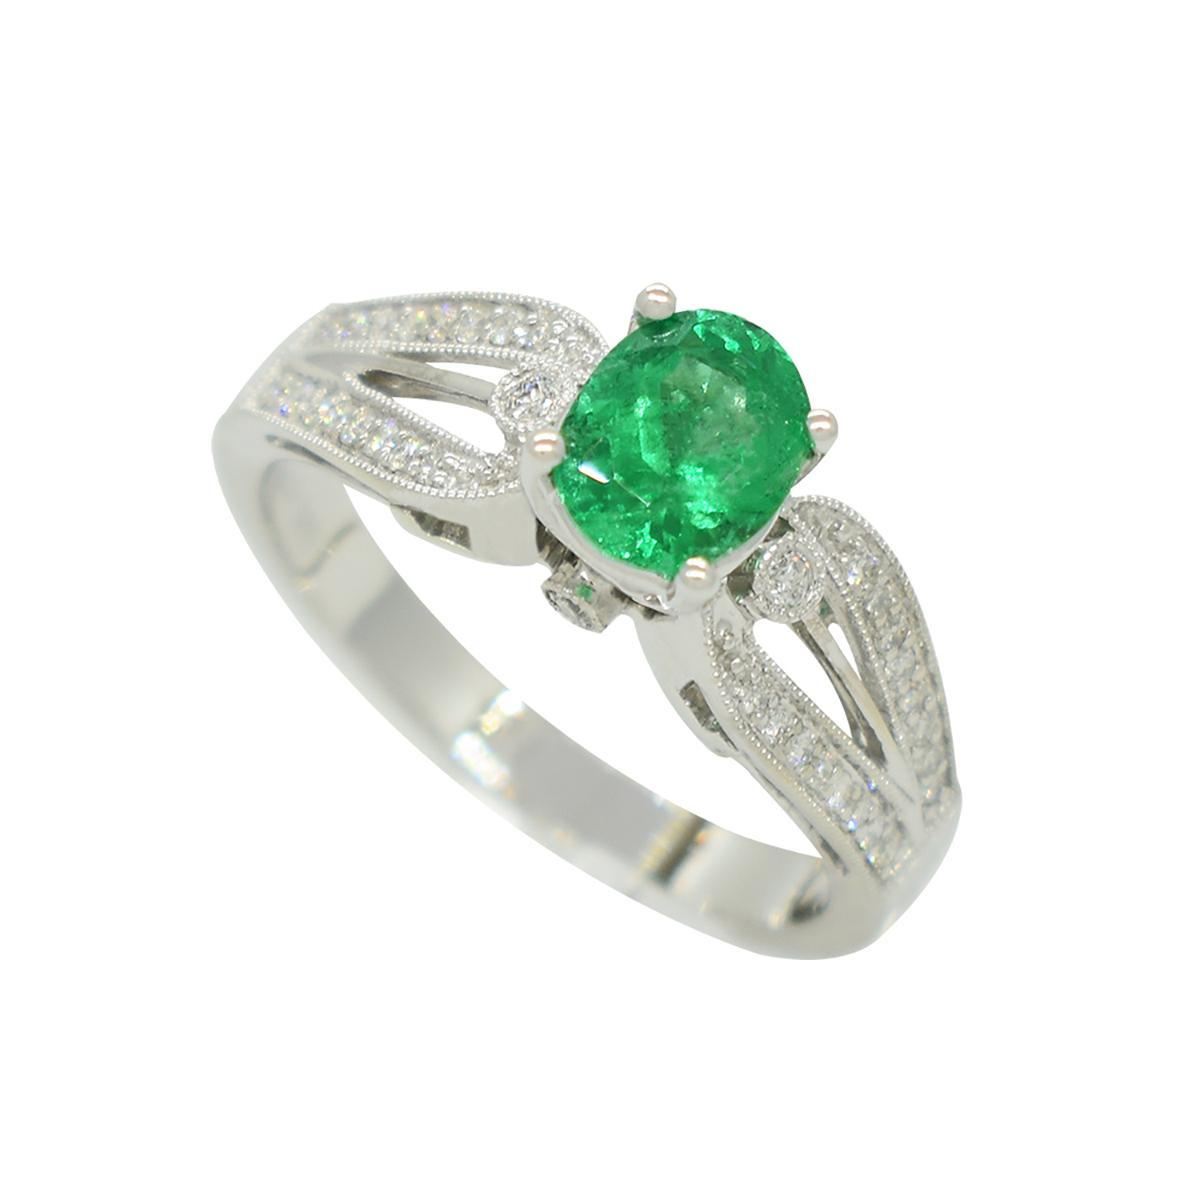 emerald-ring-in-white-gold-with-diamond-accents-in-micro-pave